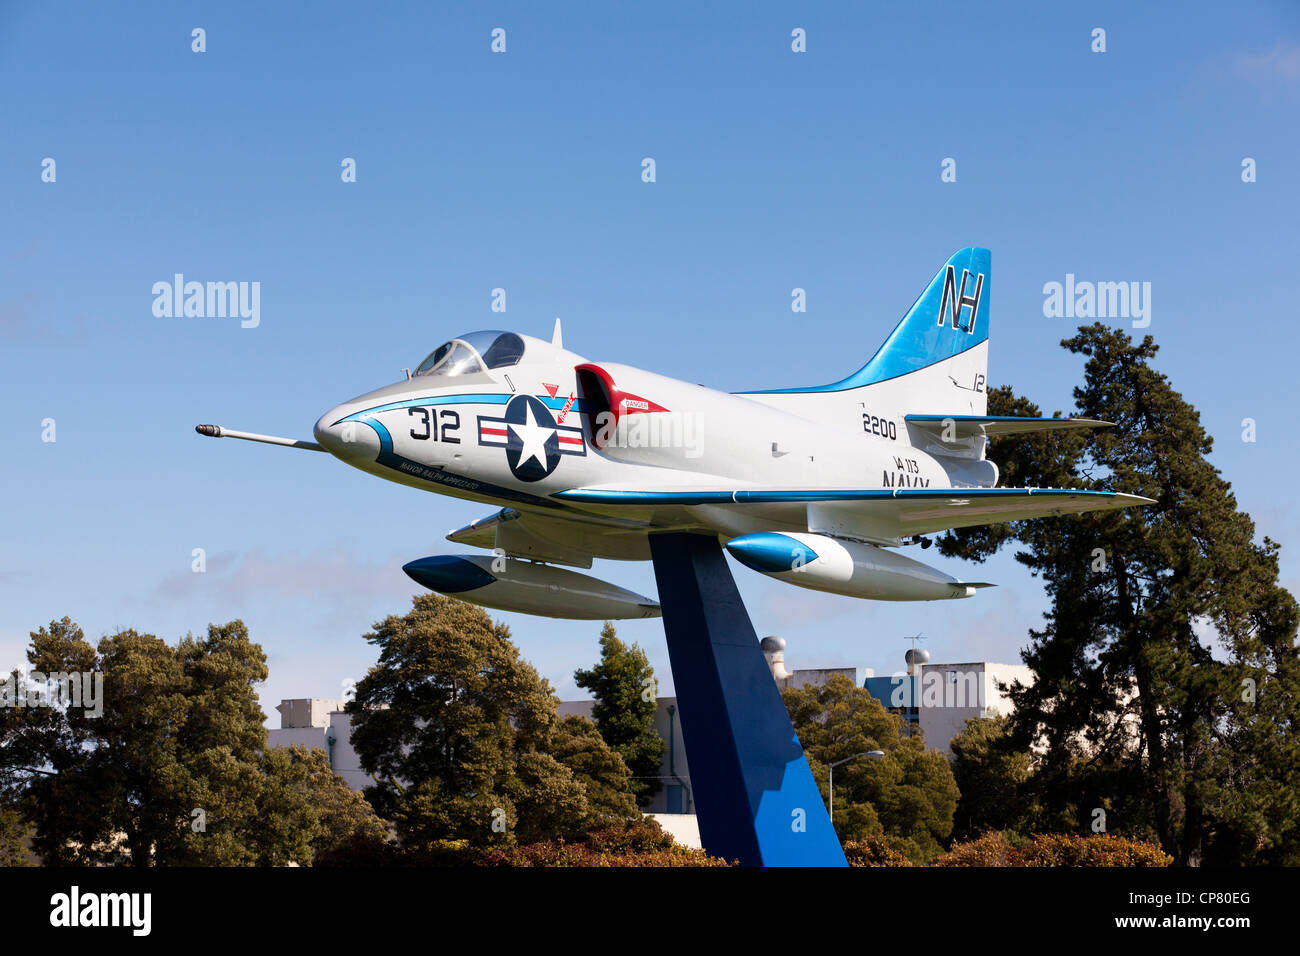 A4 Fighter Jet mounted display - Stock Image